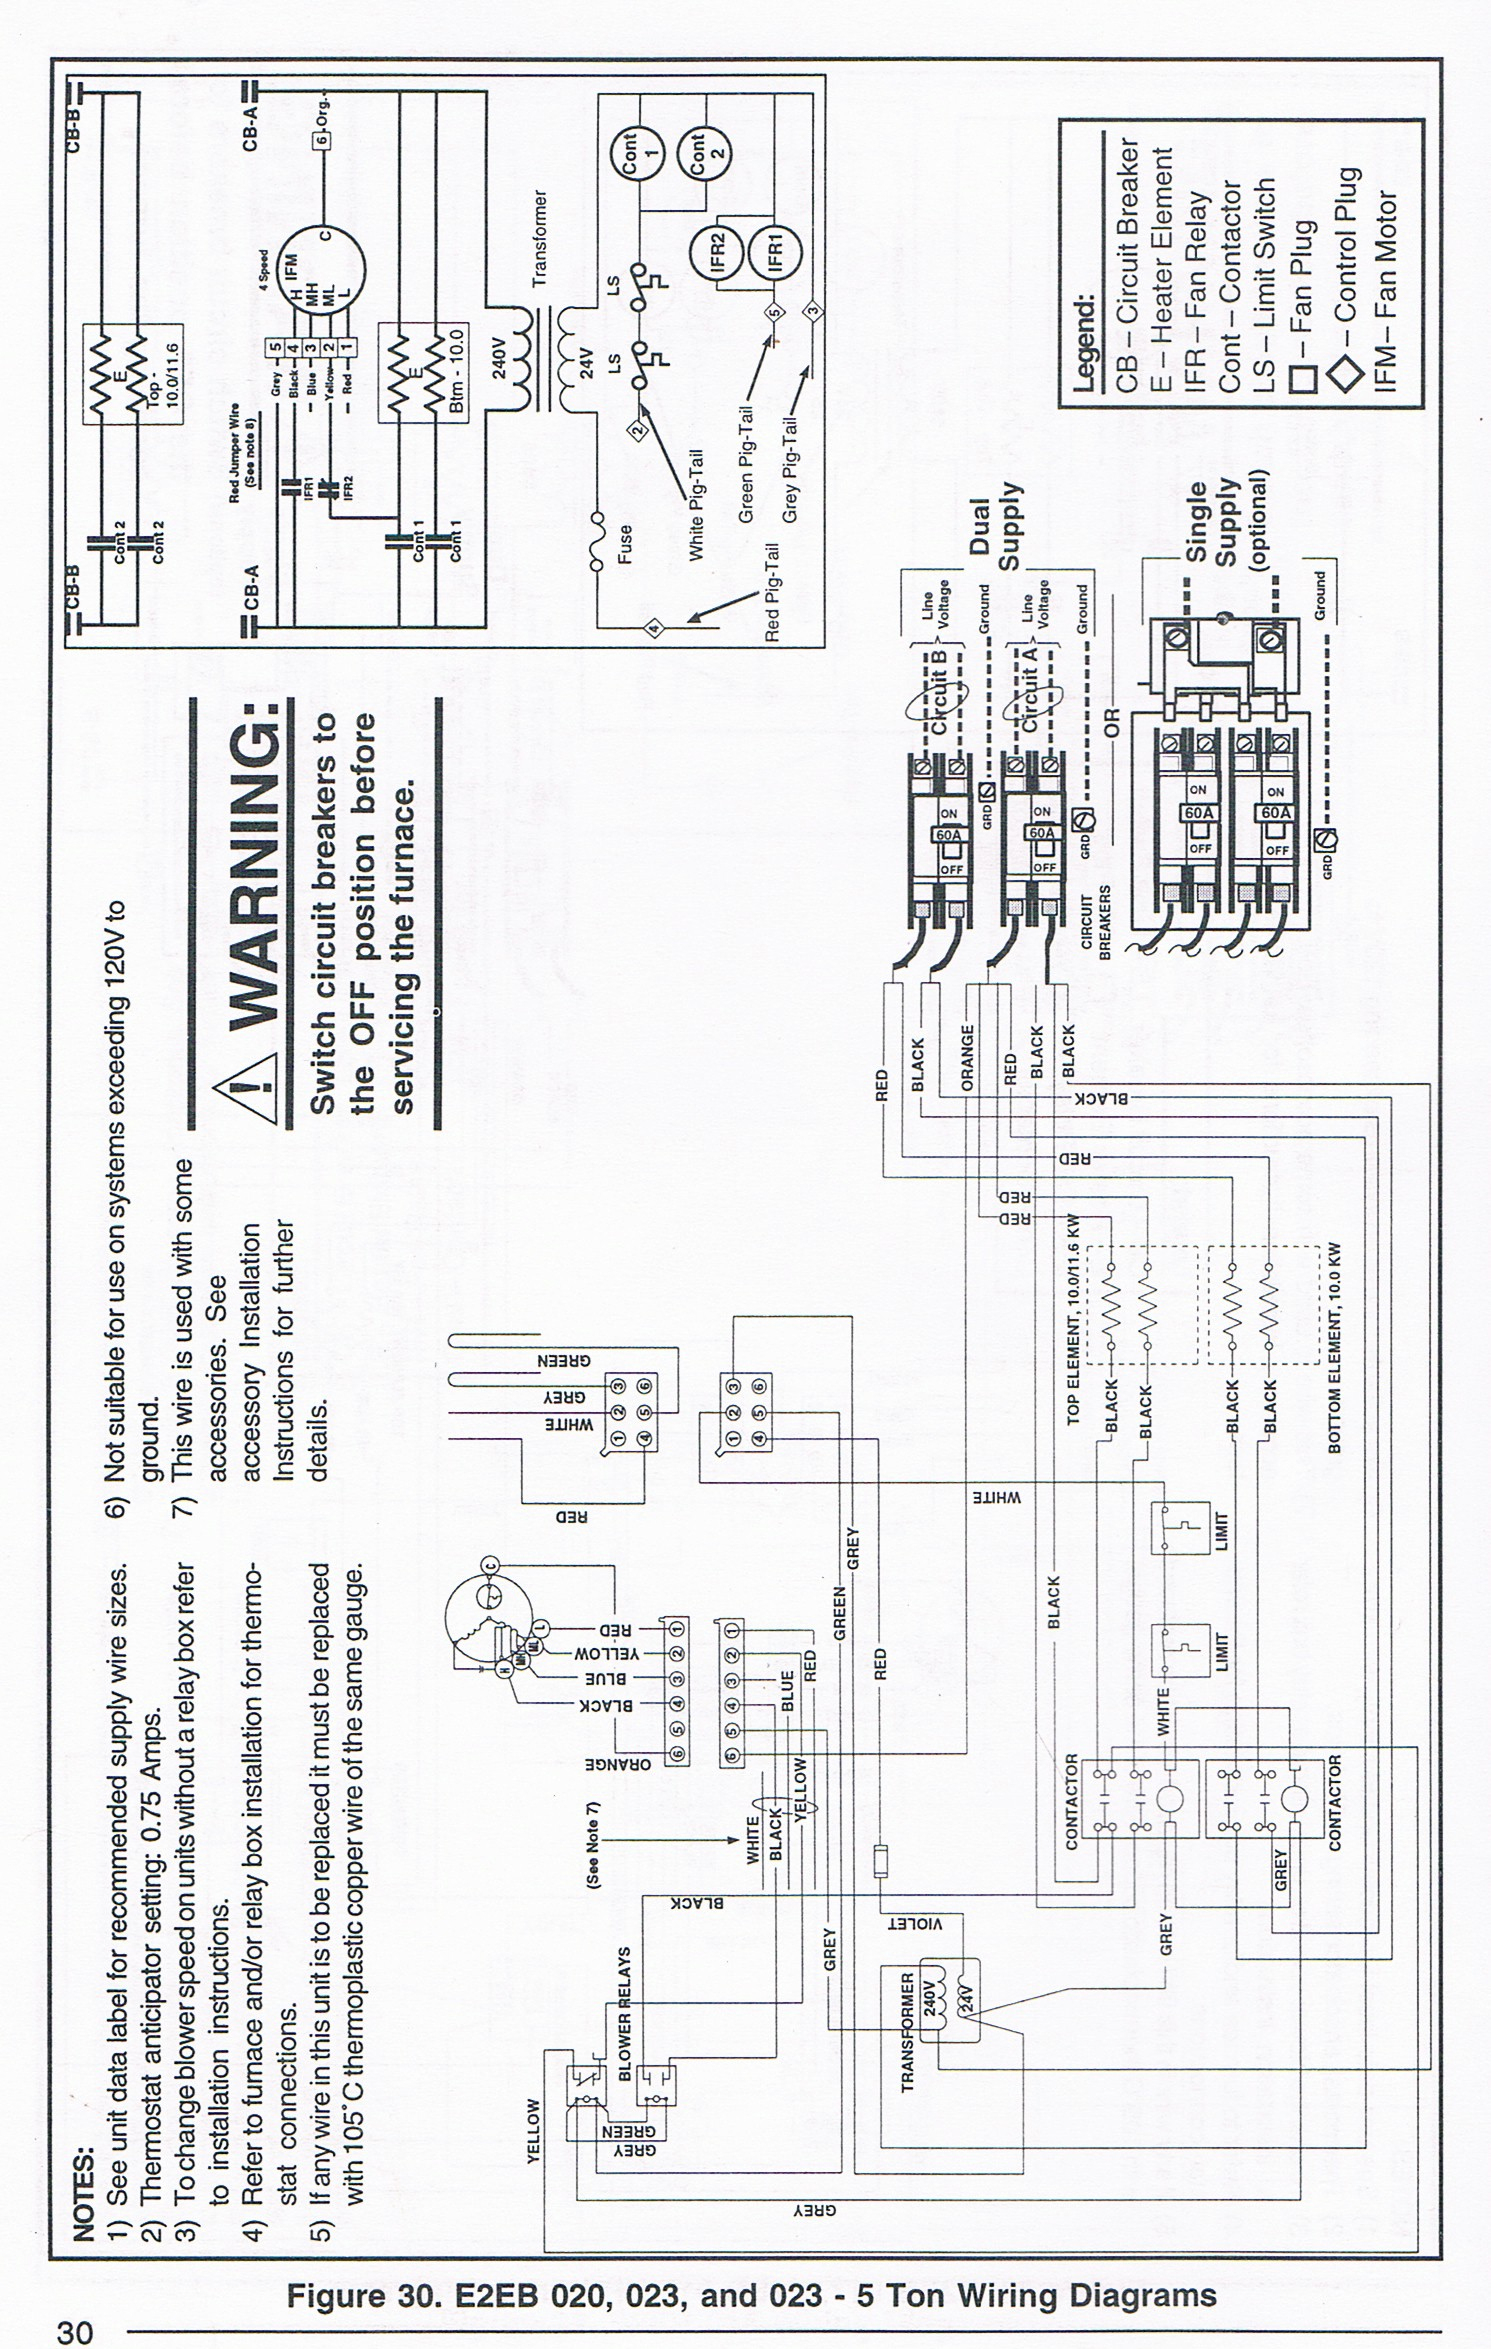 Intertherm Furnace Schematic - Wiring Diagram Explained - Wiring Diagram For Mobile Home Furnace